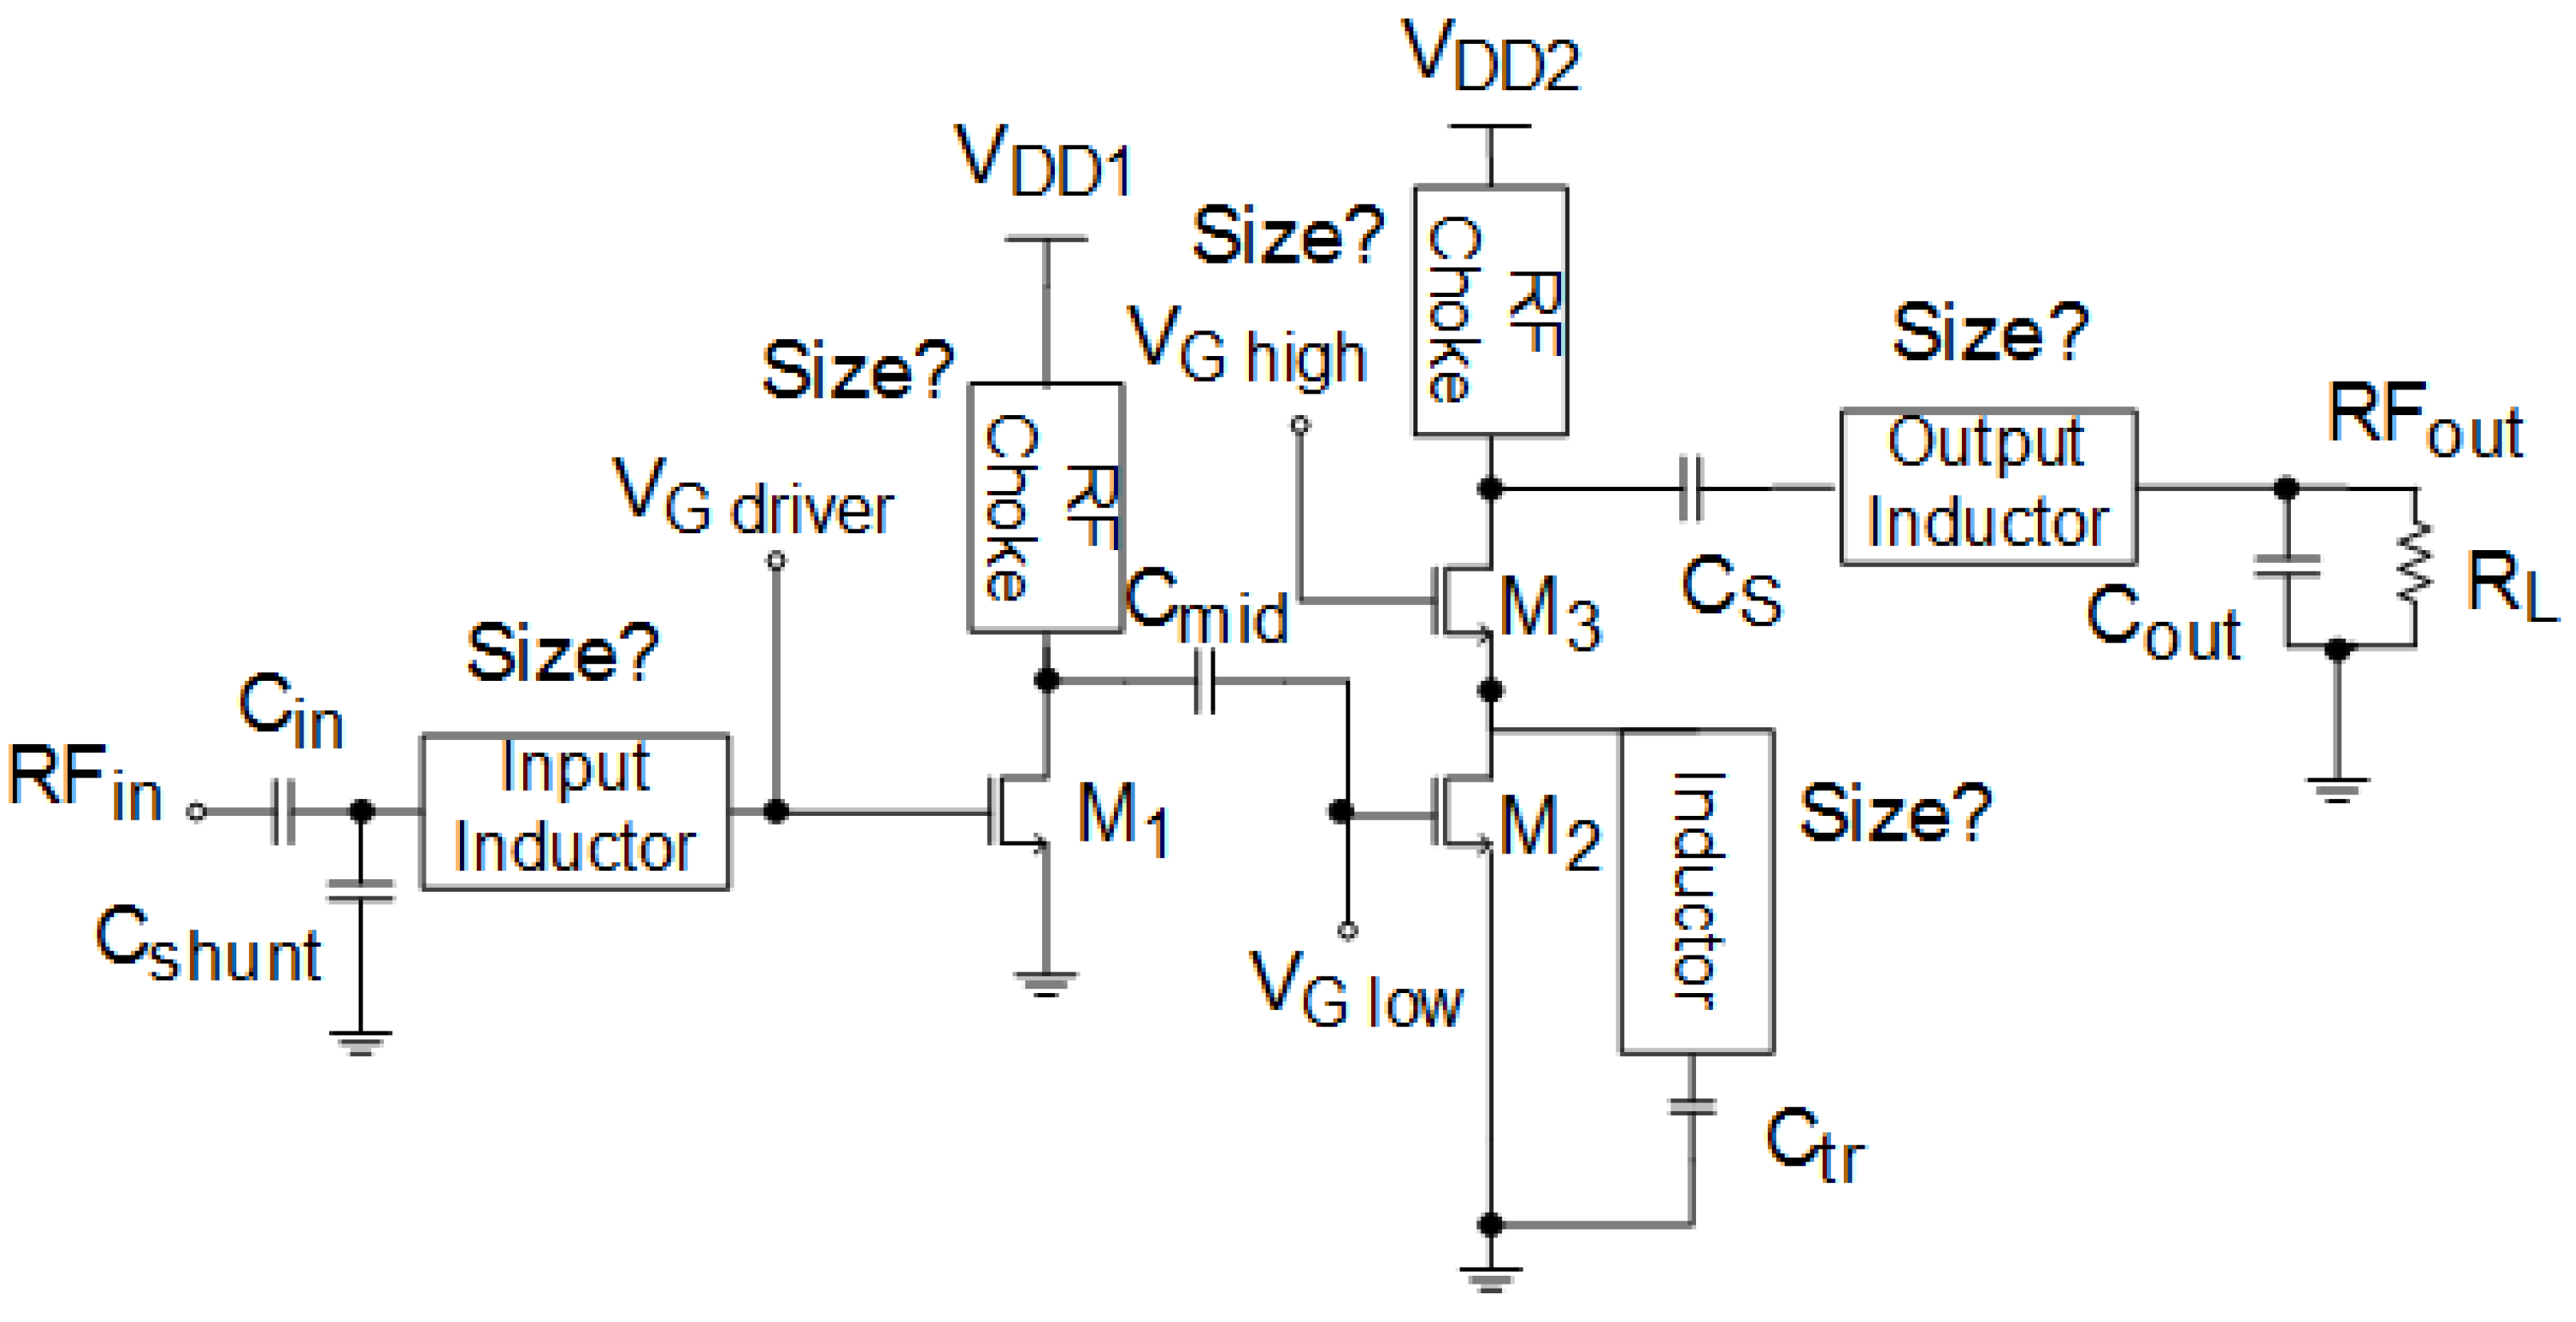 Electronics Free Full Text Beyond The Interconnections Split Designing Amplifier Circuits Analog Circuit Design 1 04 00541 G013 1024 Figure 13 Schematic